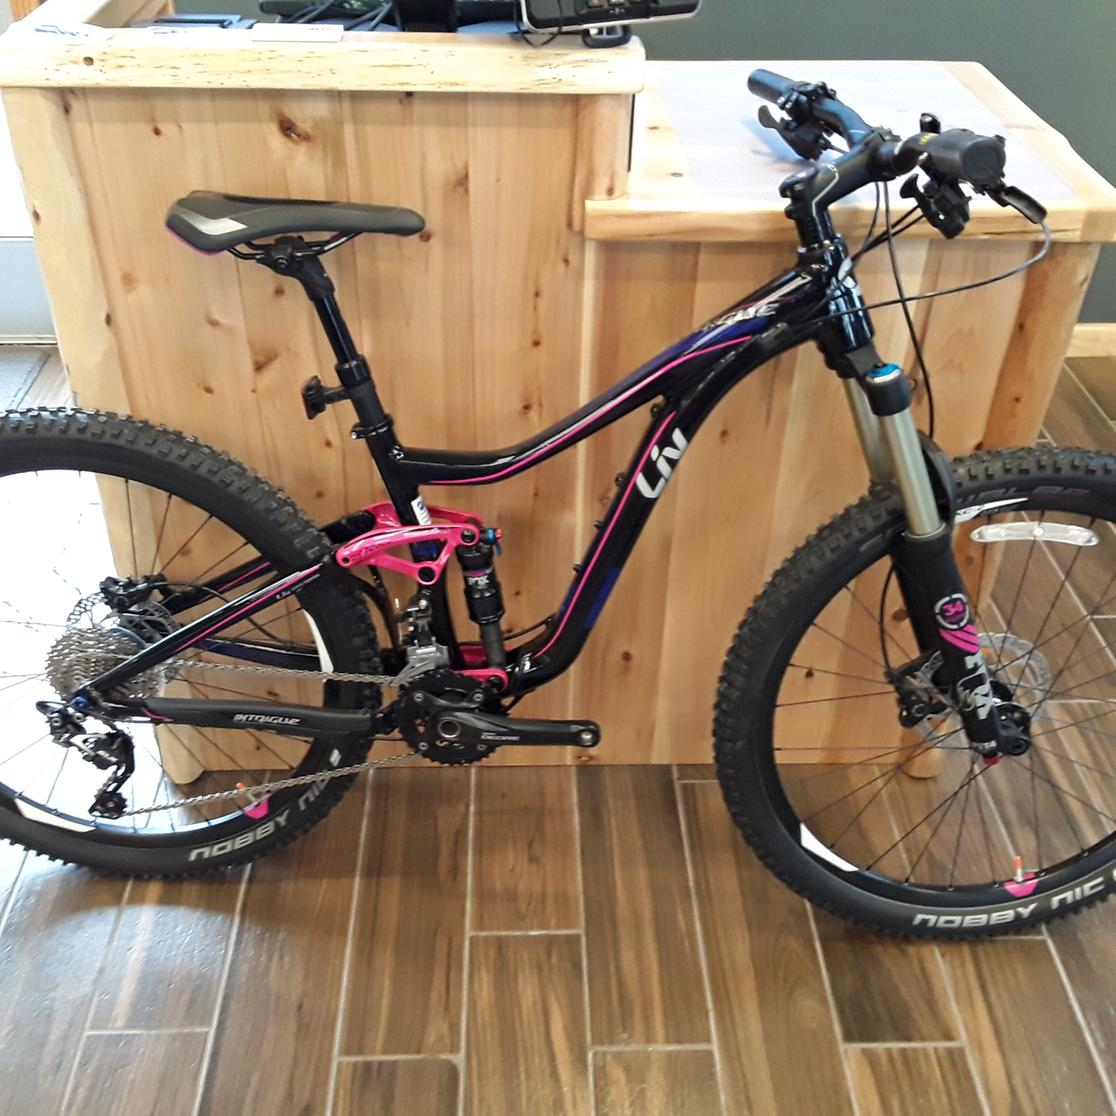 2016 Giant Intrigue 1 Small